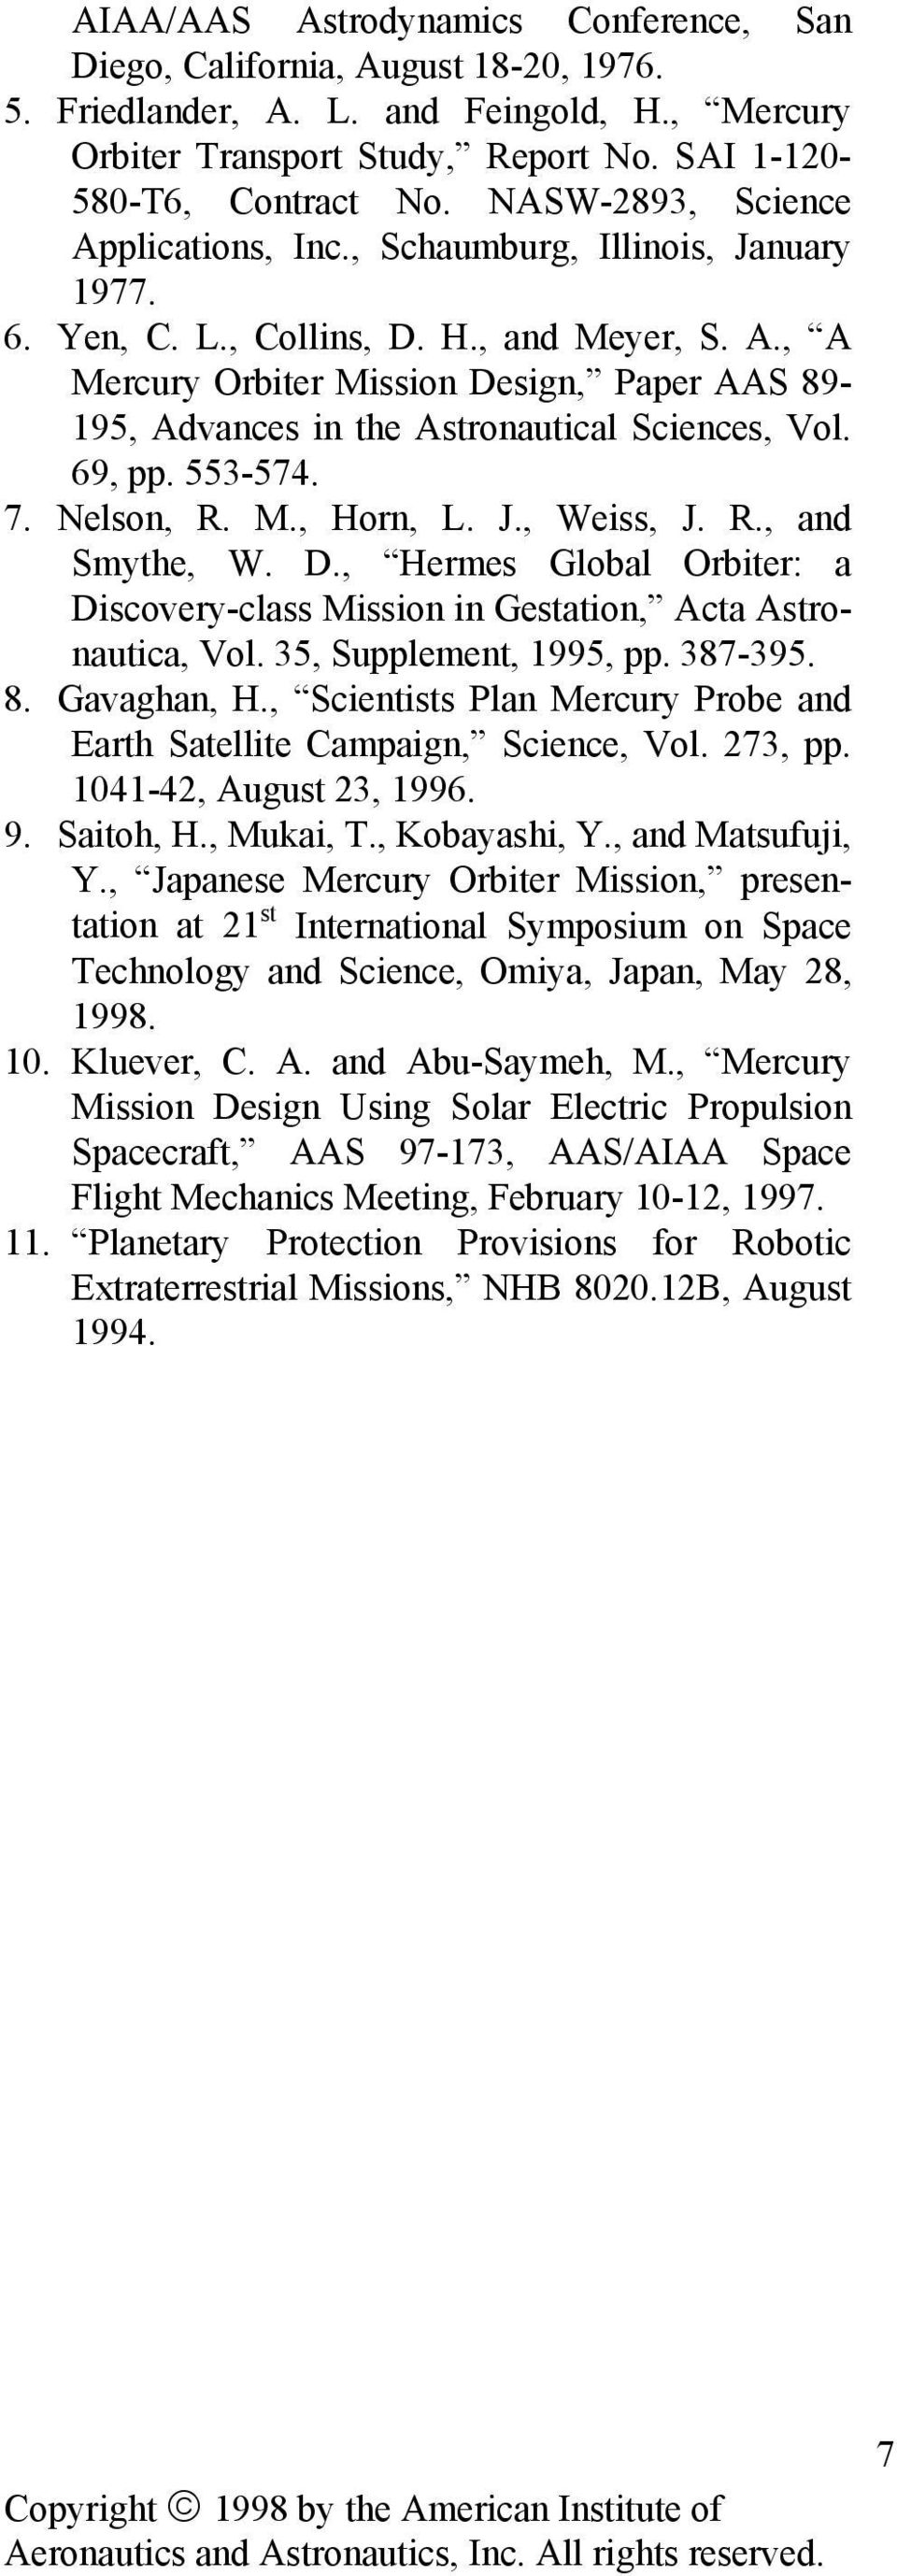 69, pp. 553I574. 7. Lelson, R. M., Horn, L. >., eeiss, >. R., and Smythe, e. D., lhermes Global [rbiterd a Disco=eryIclass Mission in Gestation,m Acta AstroI nautica, Vol. 35, Supplement, 1995, pp.